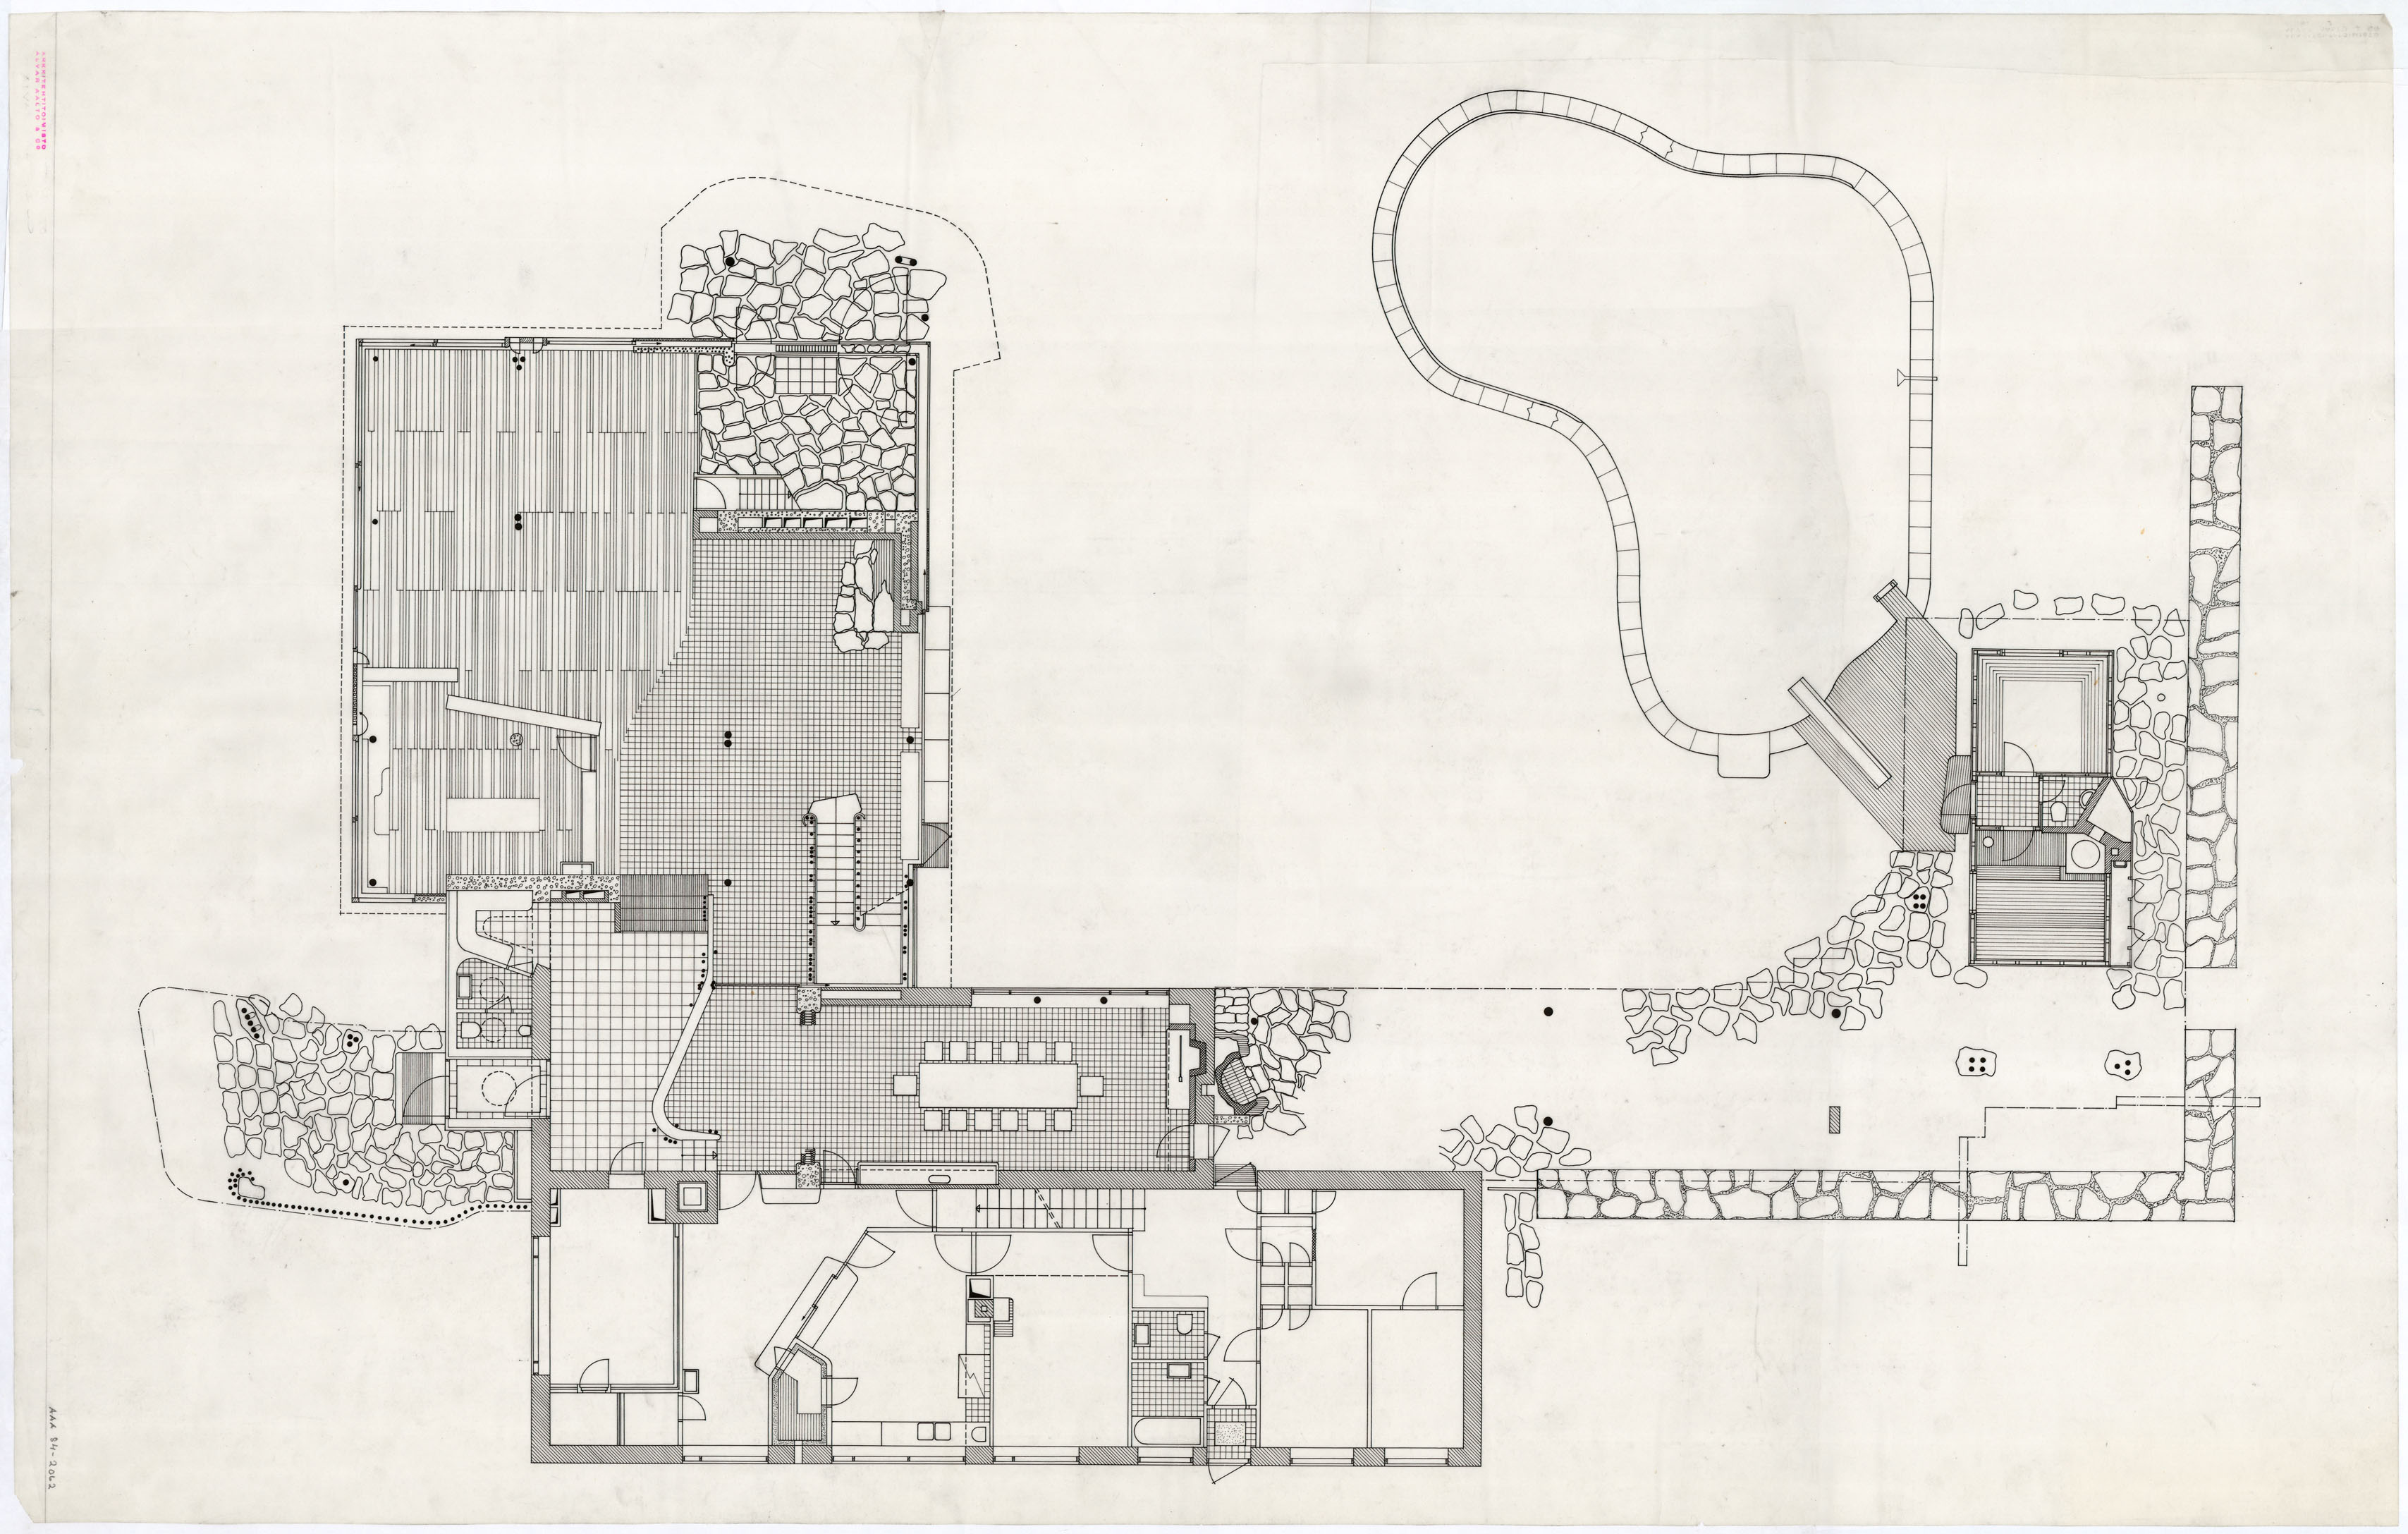 House Floor Plan With Measurements Architectural Drawings Of The Villa Mairea Alvar Aalto Shop